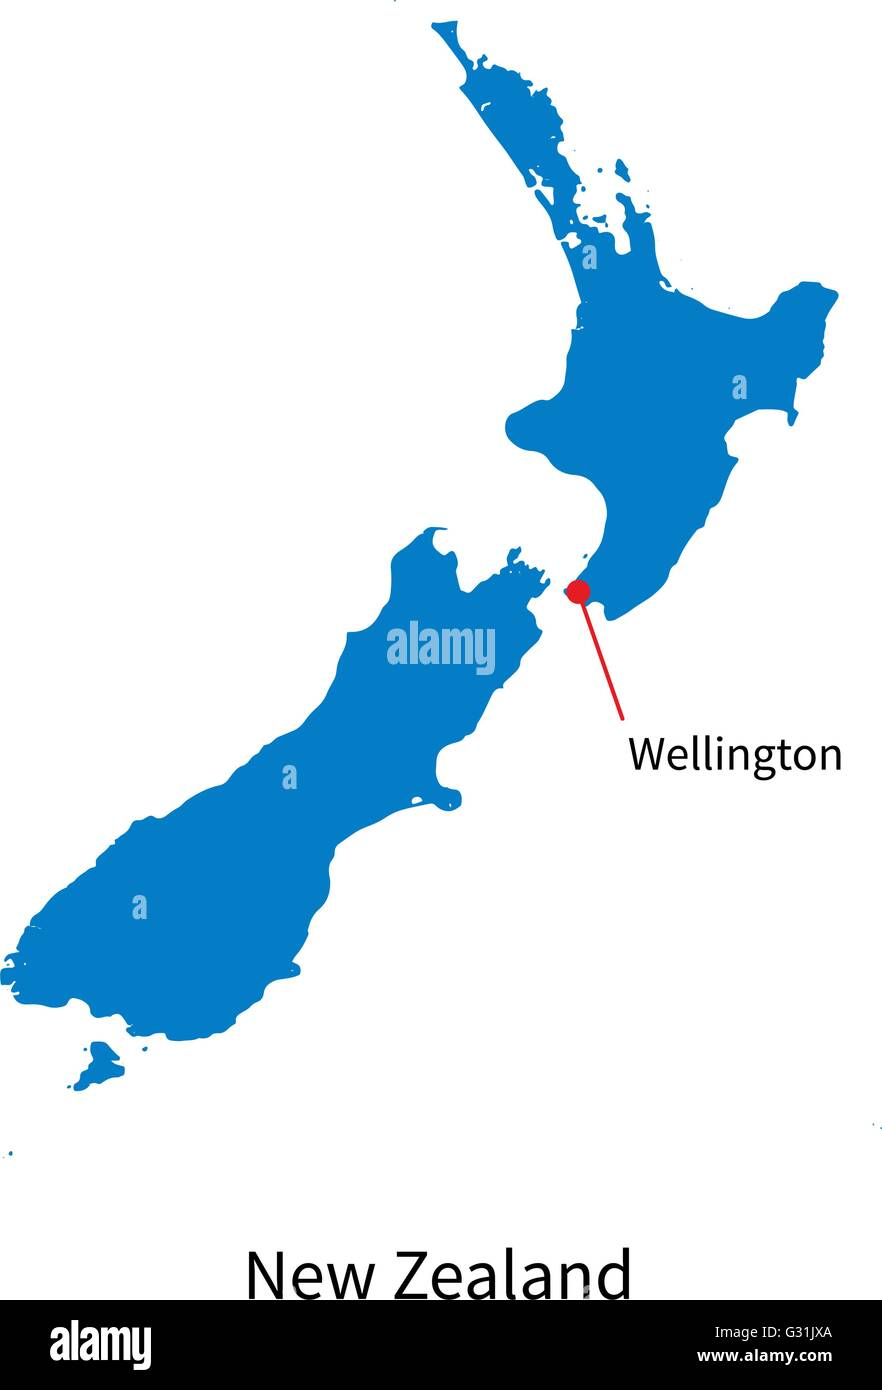 Where Is Wellington New Zealand On The Map.Detailed Vector Map Of New Zealand And Capital City Wellington Stock